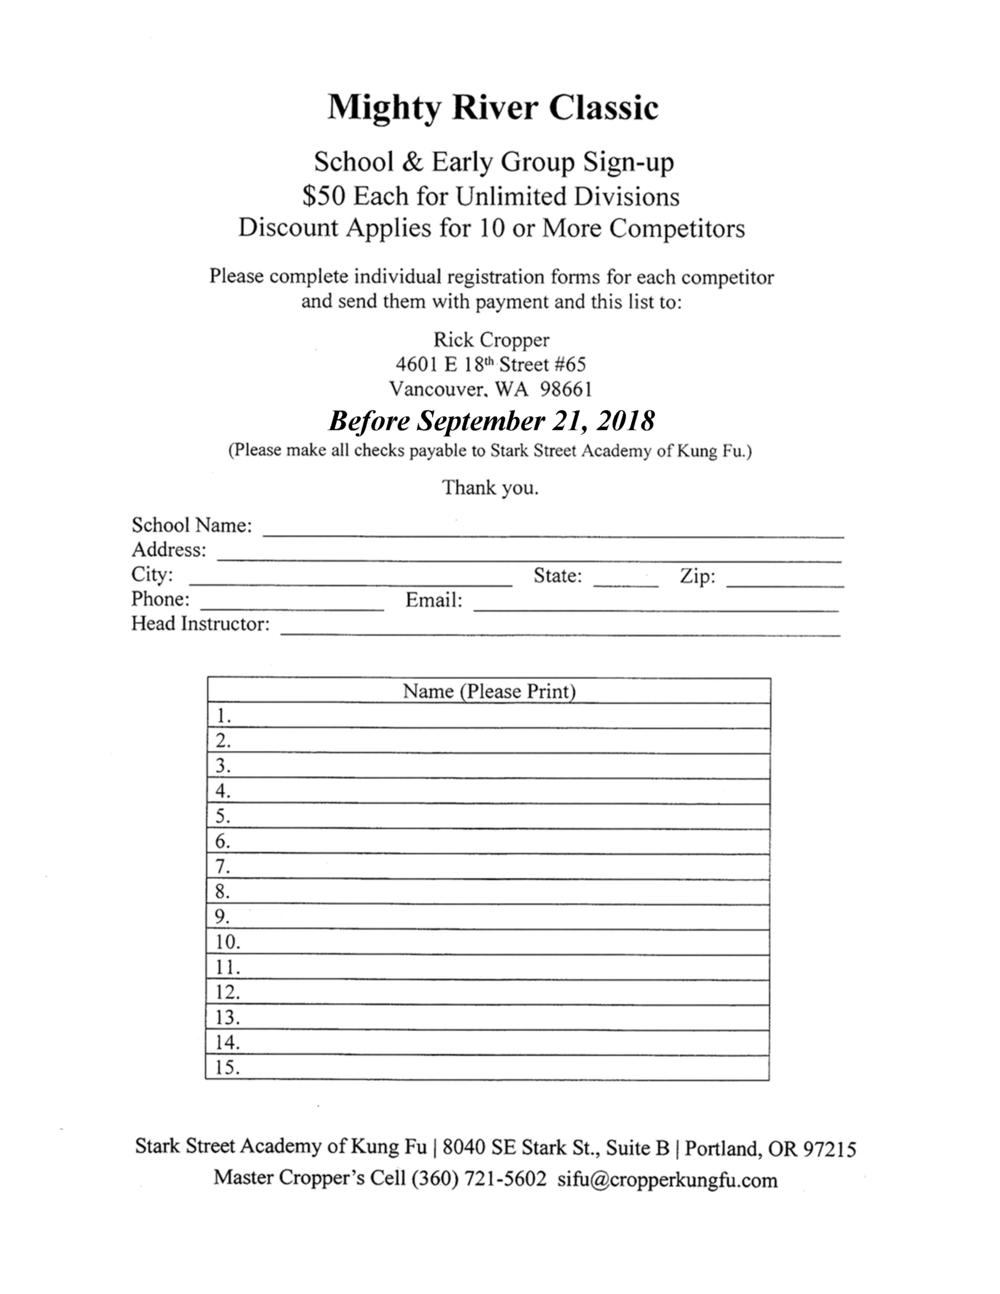 School & Early Group Sign-up Sheet - 2 2018.png